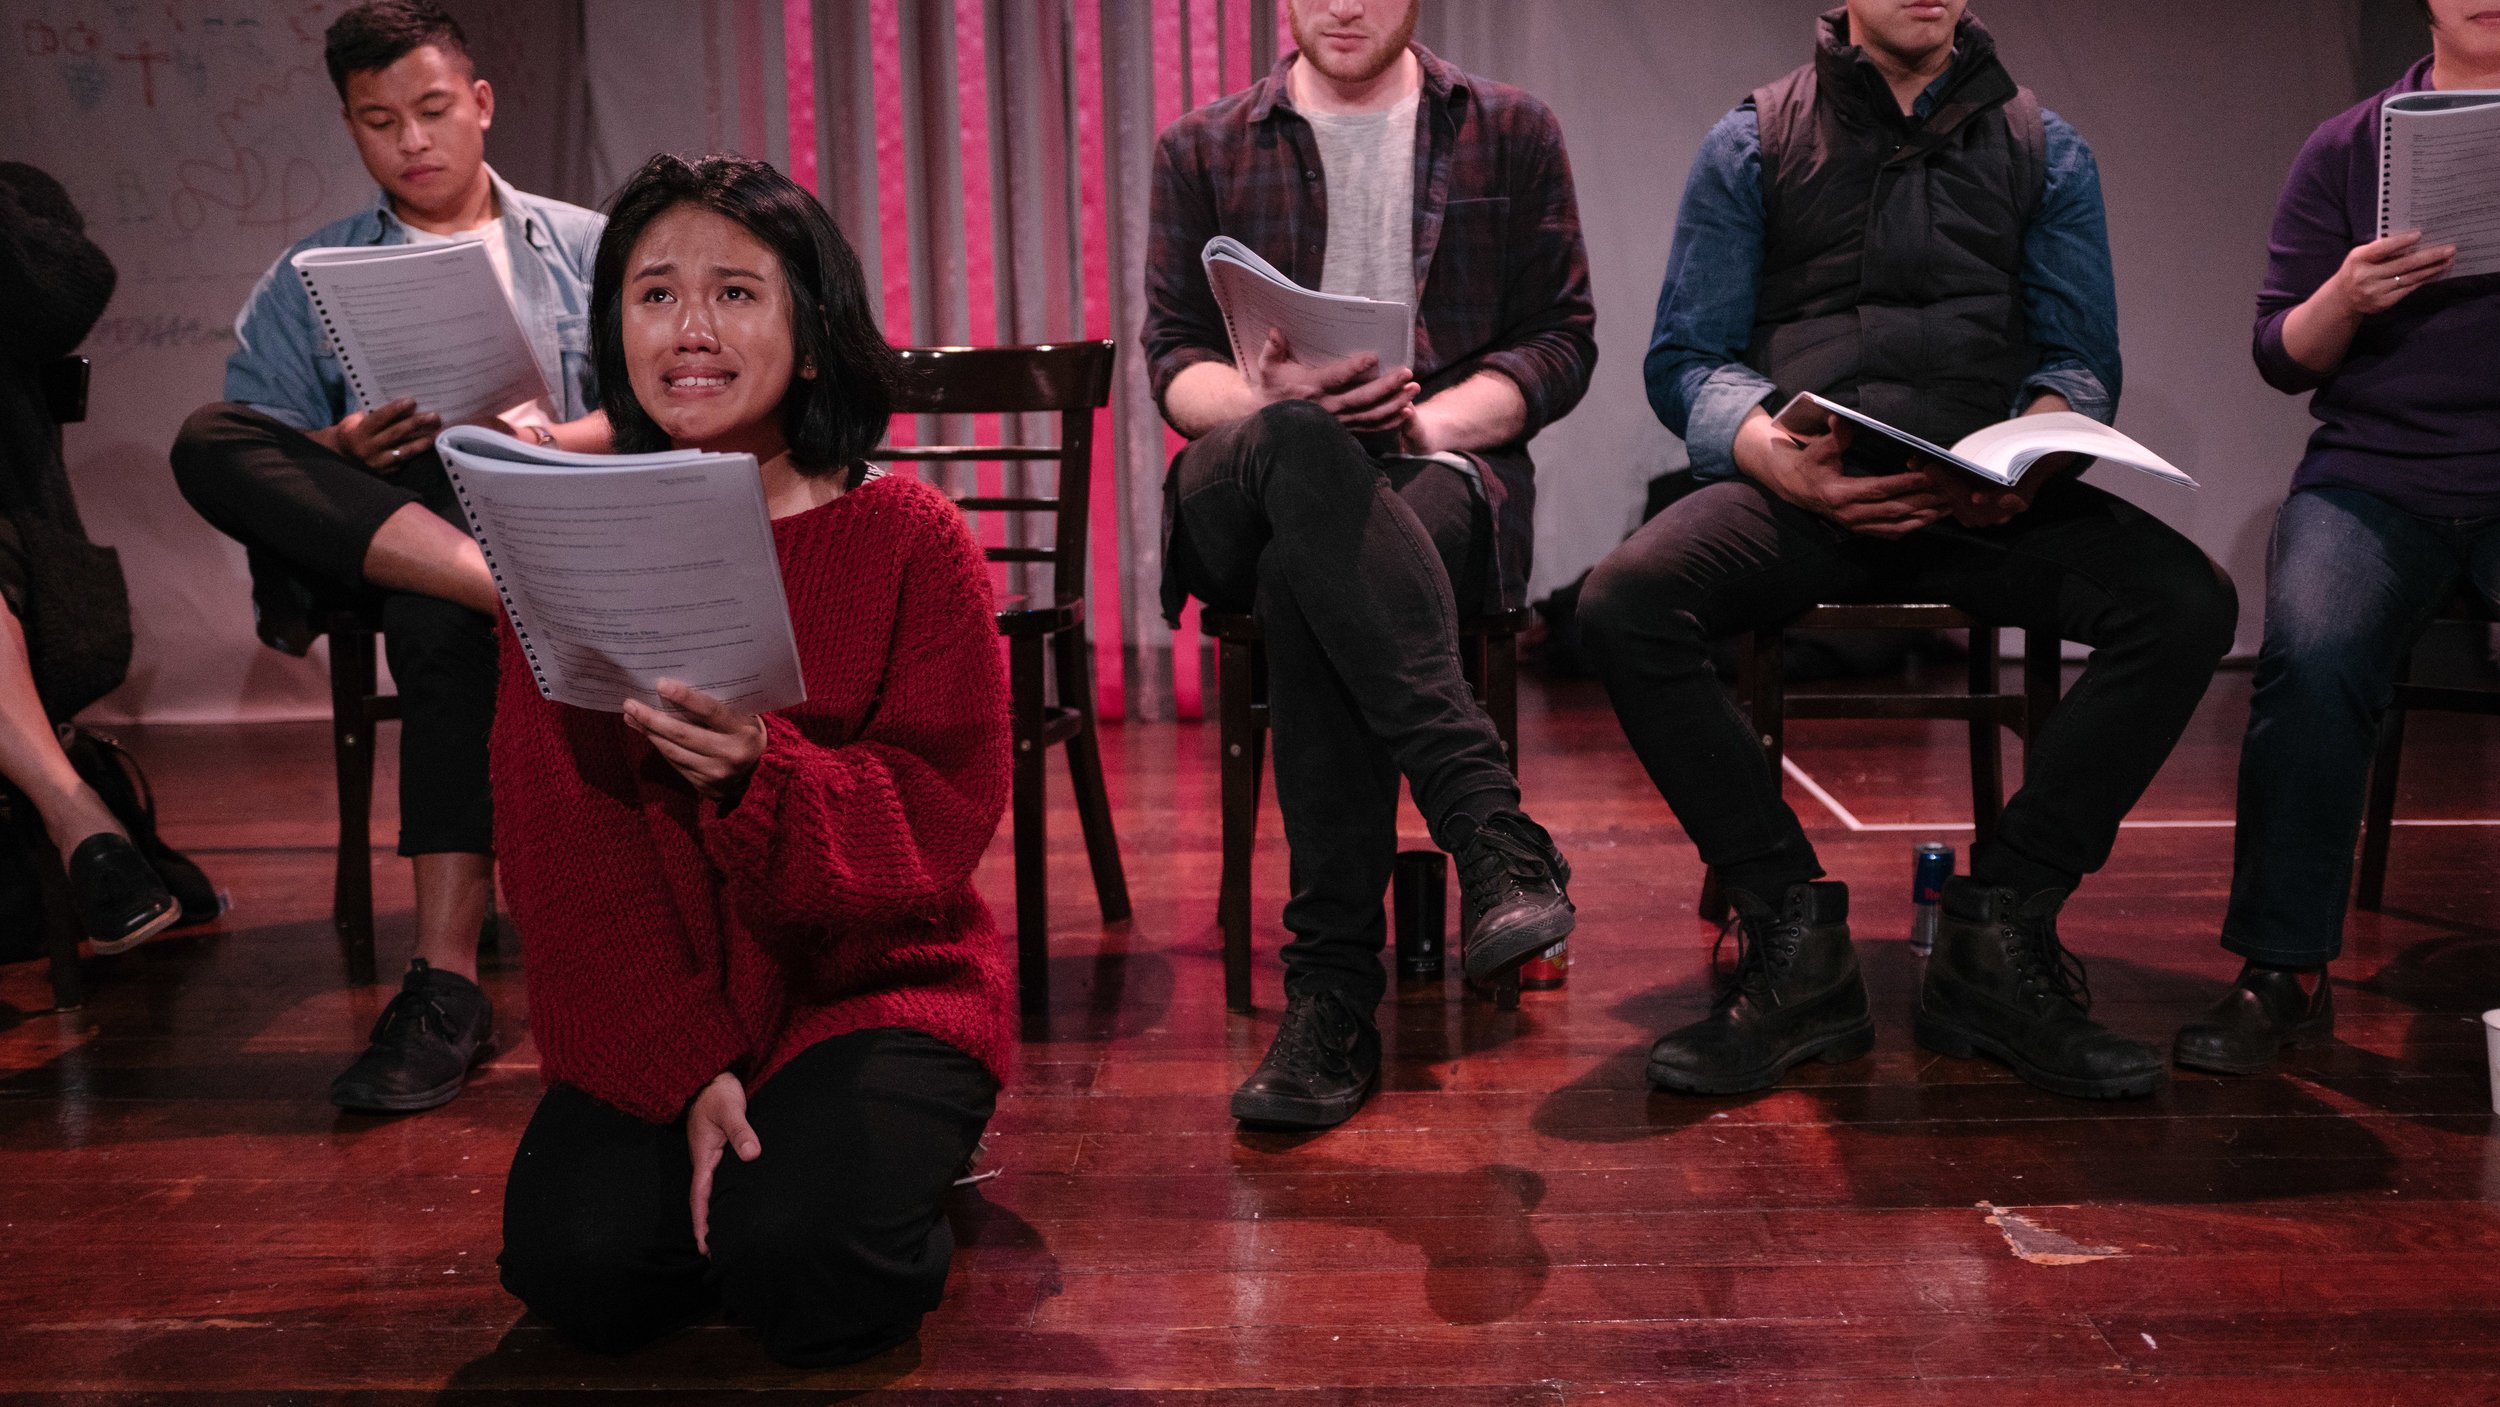 PINAY live development reading 2018. Photo: John Rata